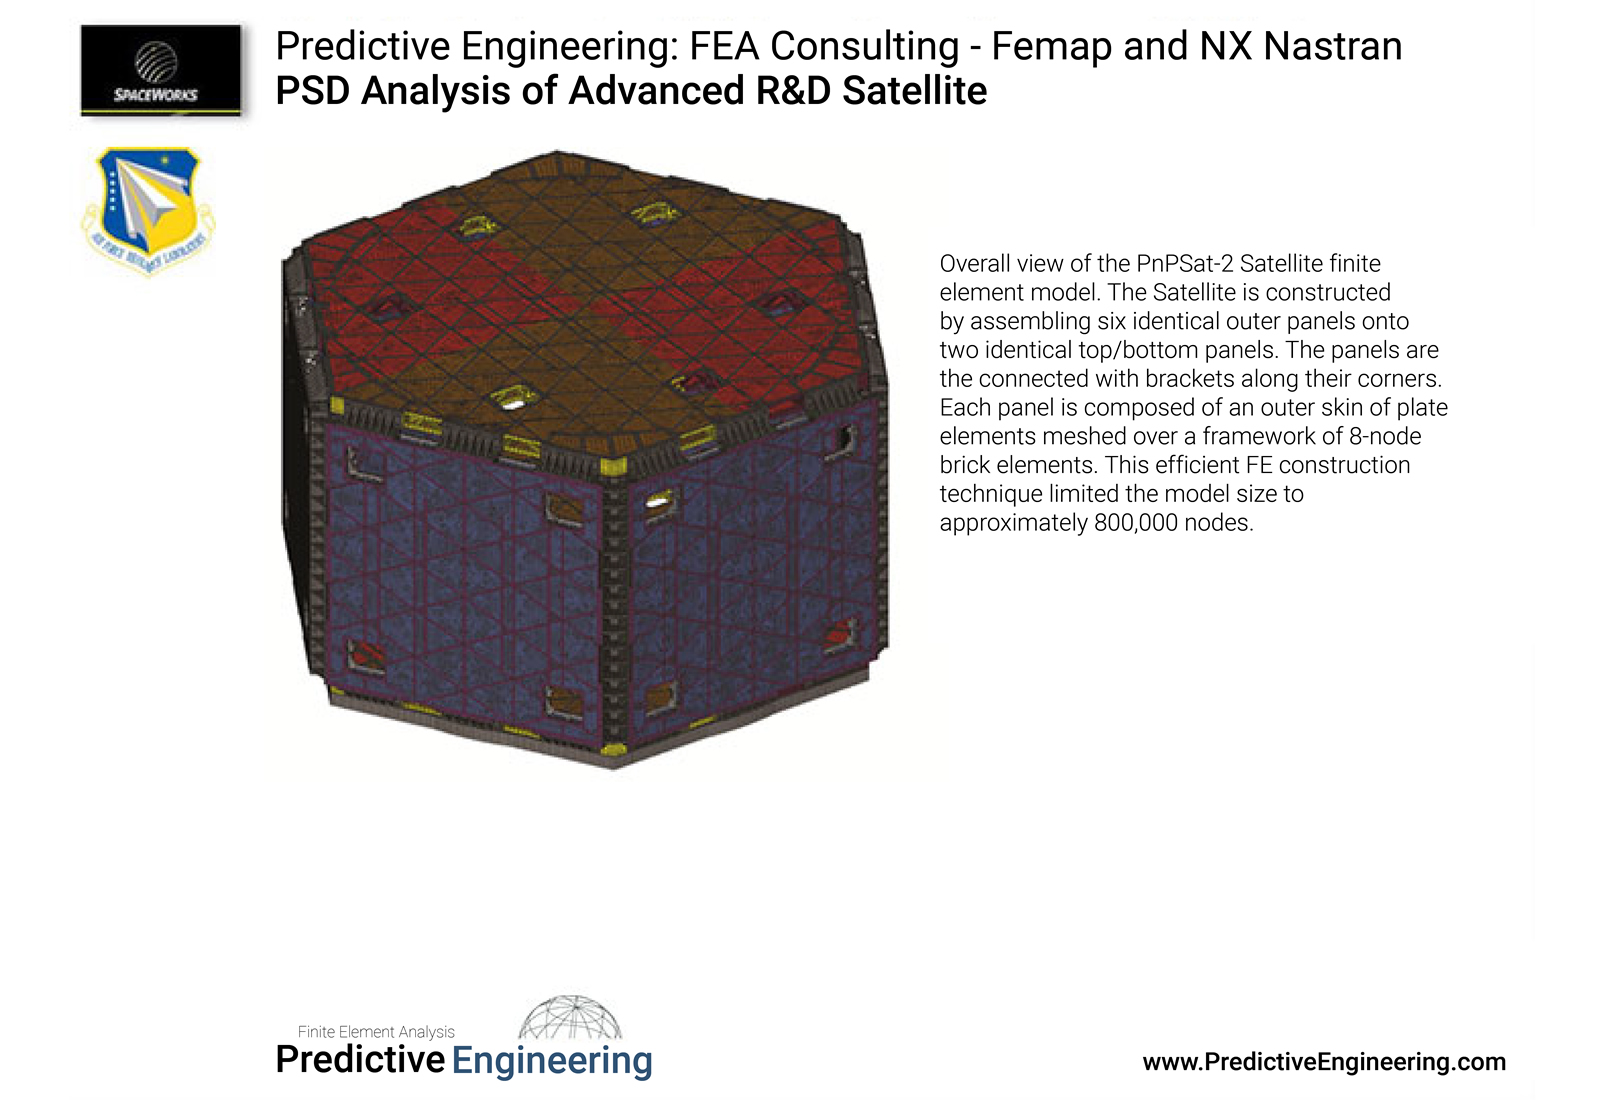 PnP Satellite Assembled by Six Panels - meshed with brick and plate elements - Predictive Engineering FEA Consutling Services